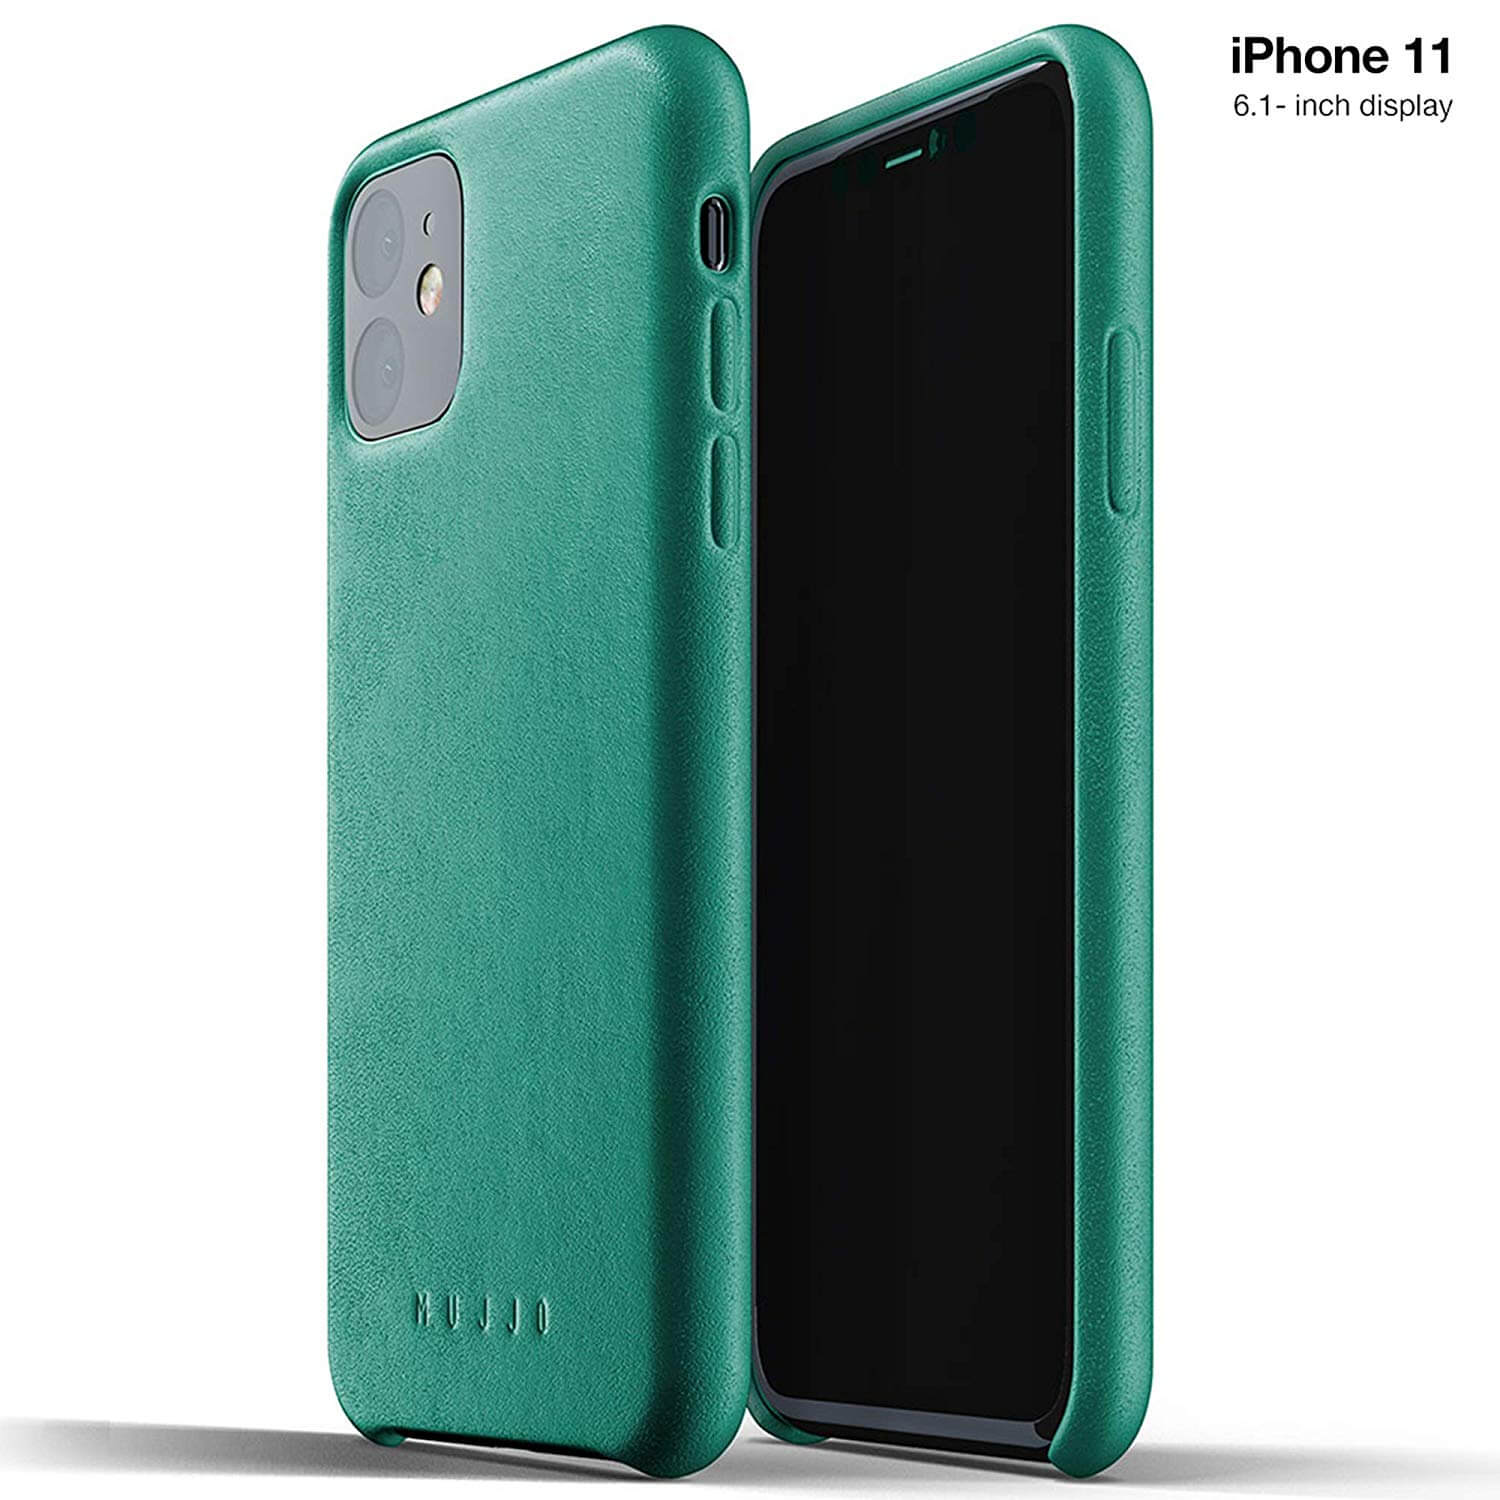 Mujjo Full Leather Case for iPhone 11 (alpine green)